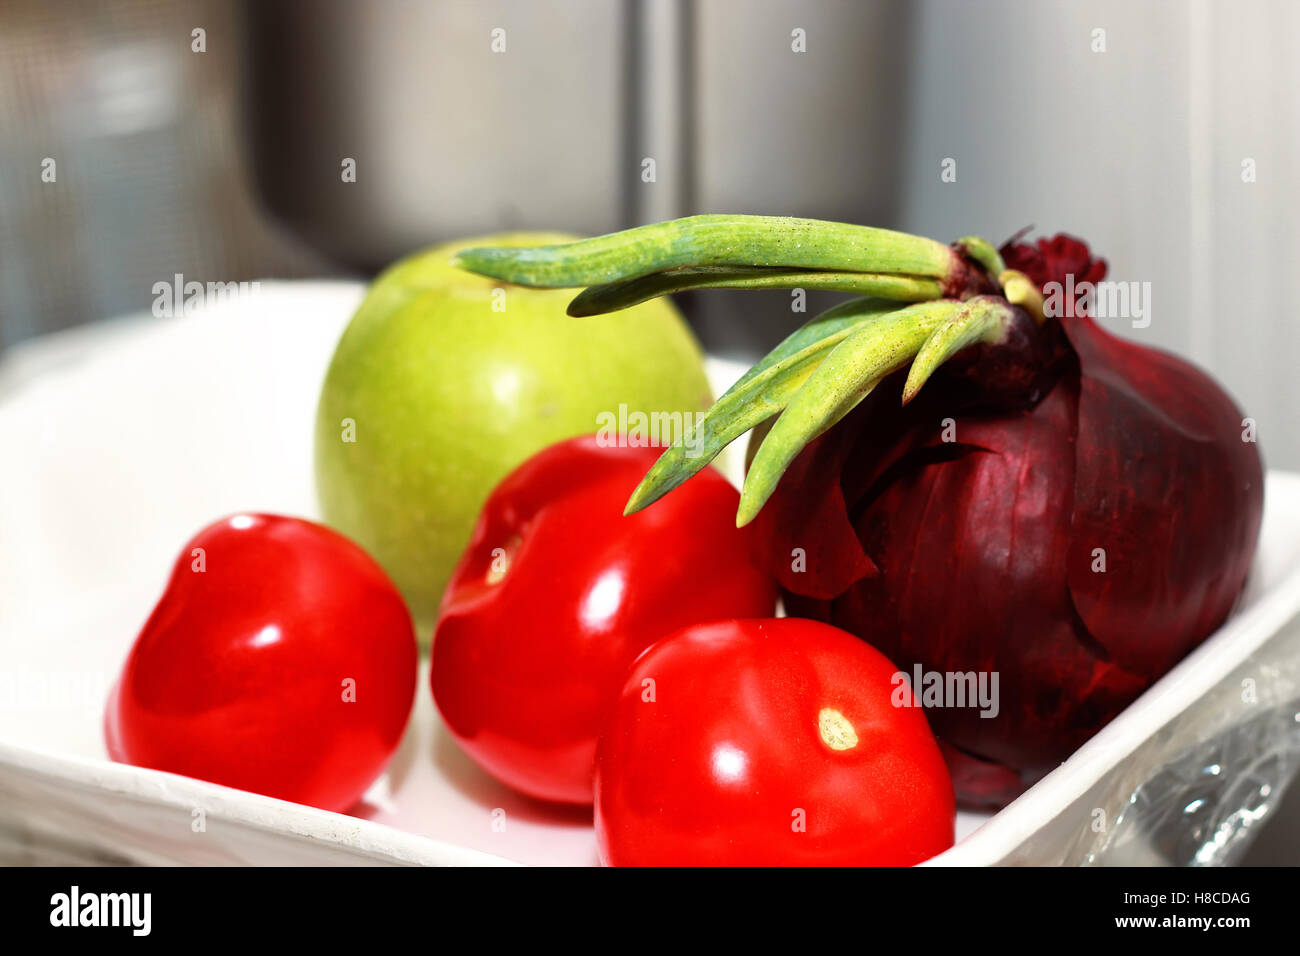 red tomato and onion - Stock Image